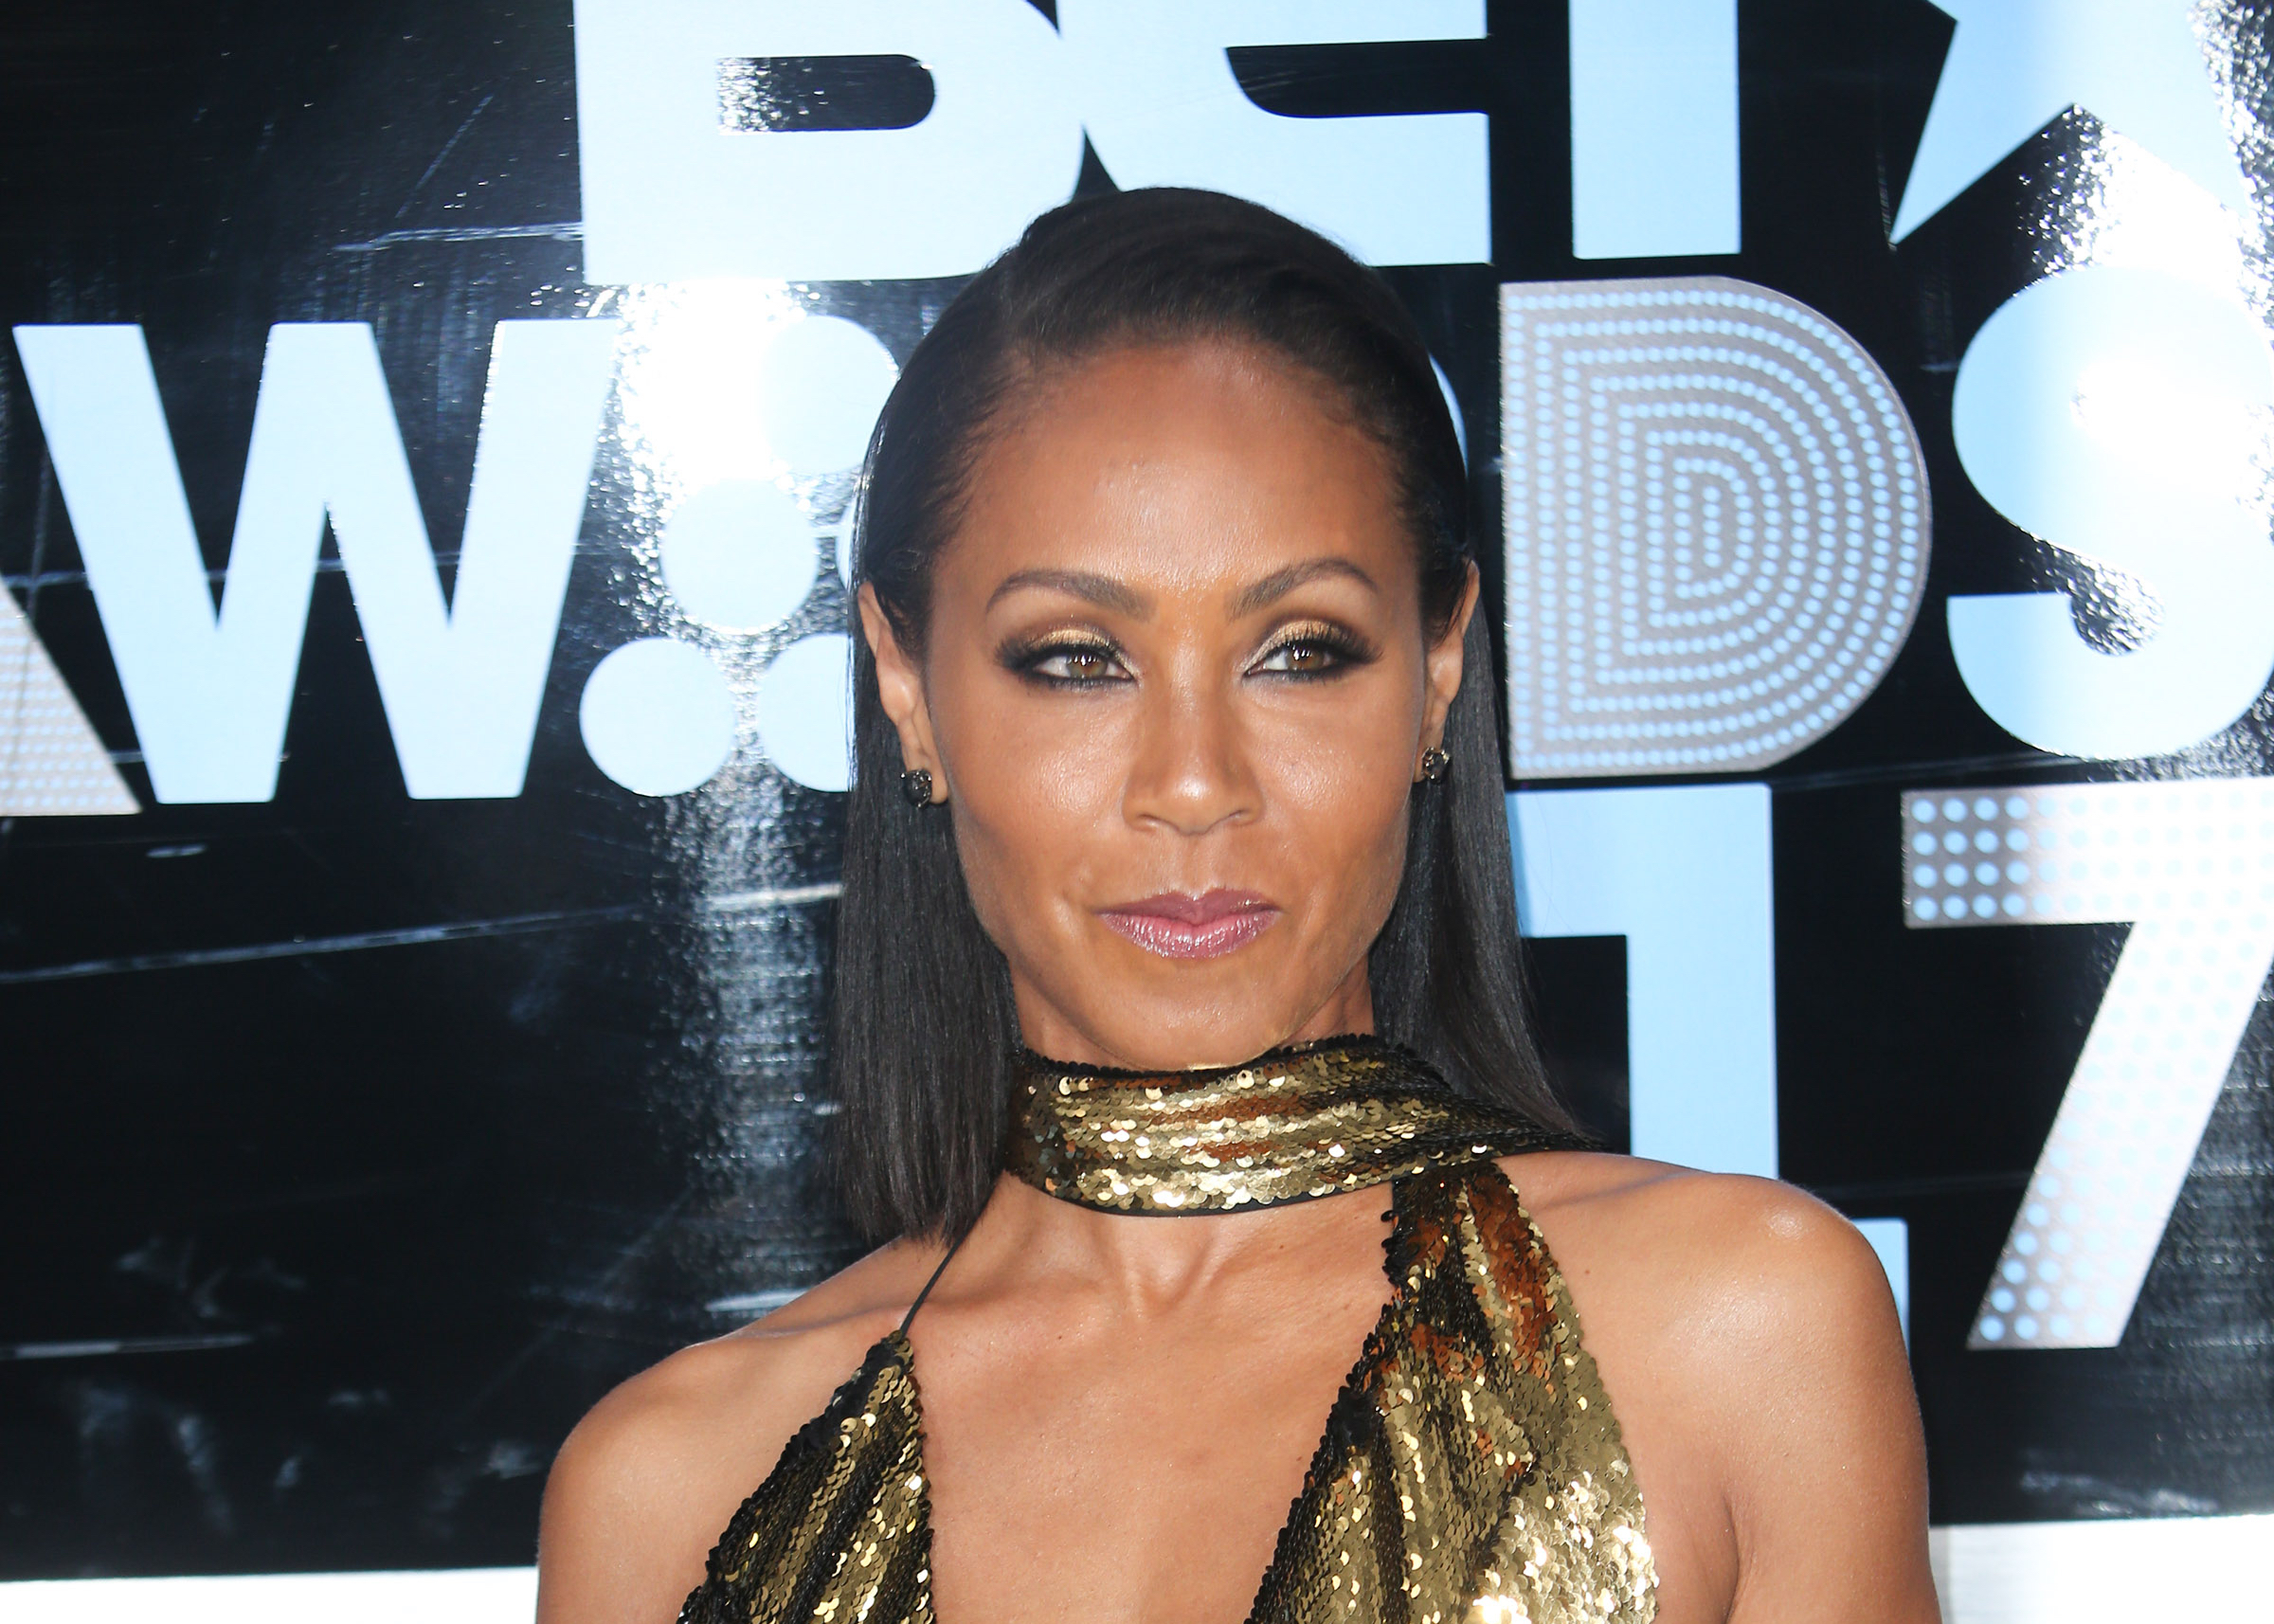 Jada Pinkett Smith Explains Why 'Race & Oppression' Ended Her Relationships With White Males